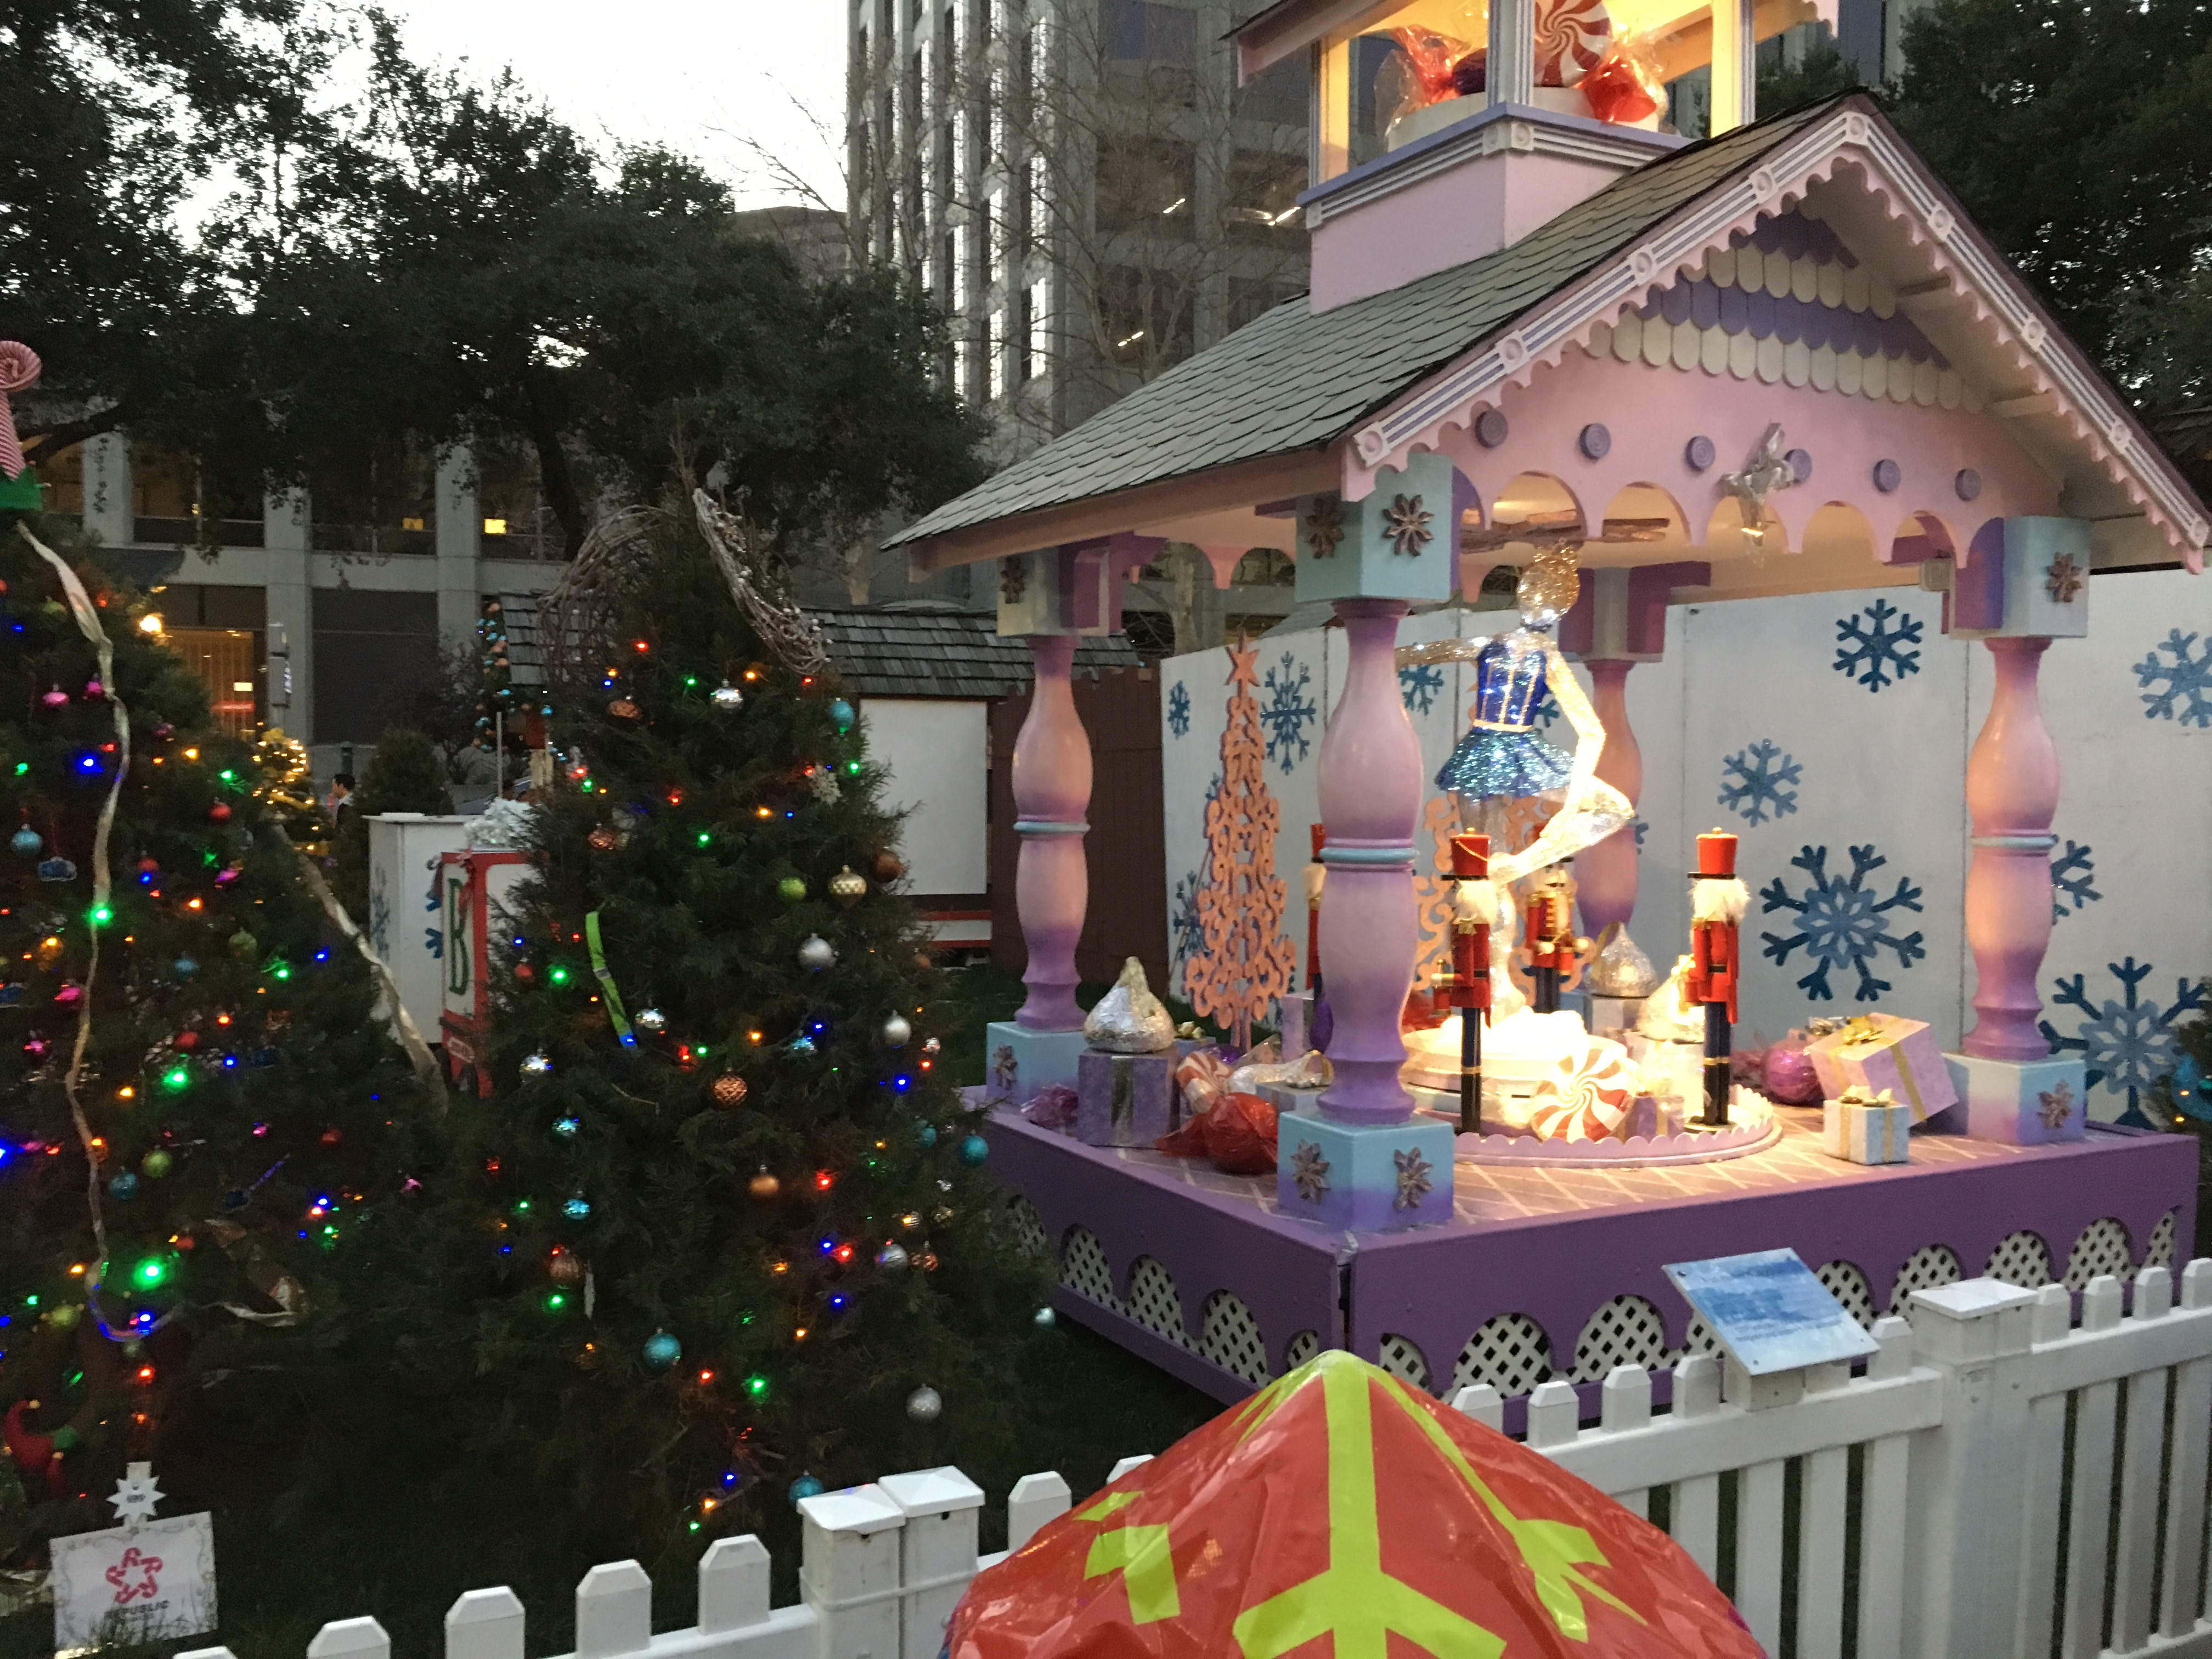 filechristmas in the park 20 2016 12 28jpg - When Does Christmas In The Park Open